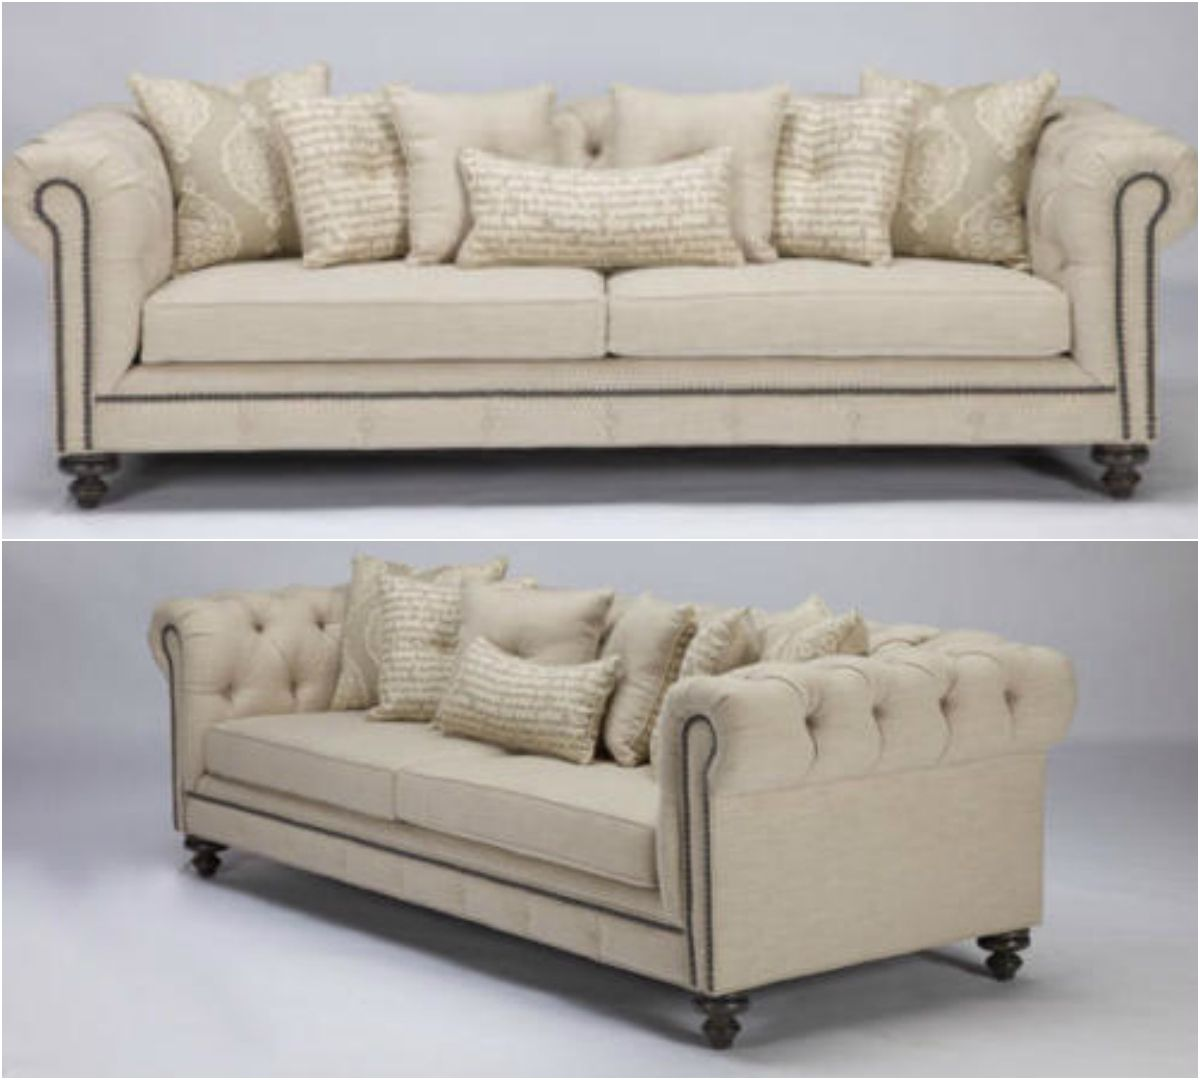 This Traditional Chesterfield Inspired Sofa Is Incorporated With A Modern Twist Using Cream Textured Linen Blend Fab Sofa Contemporary Sofa French Country Sofa